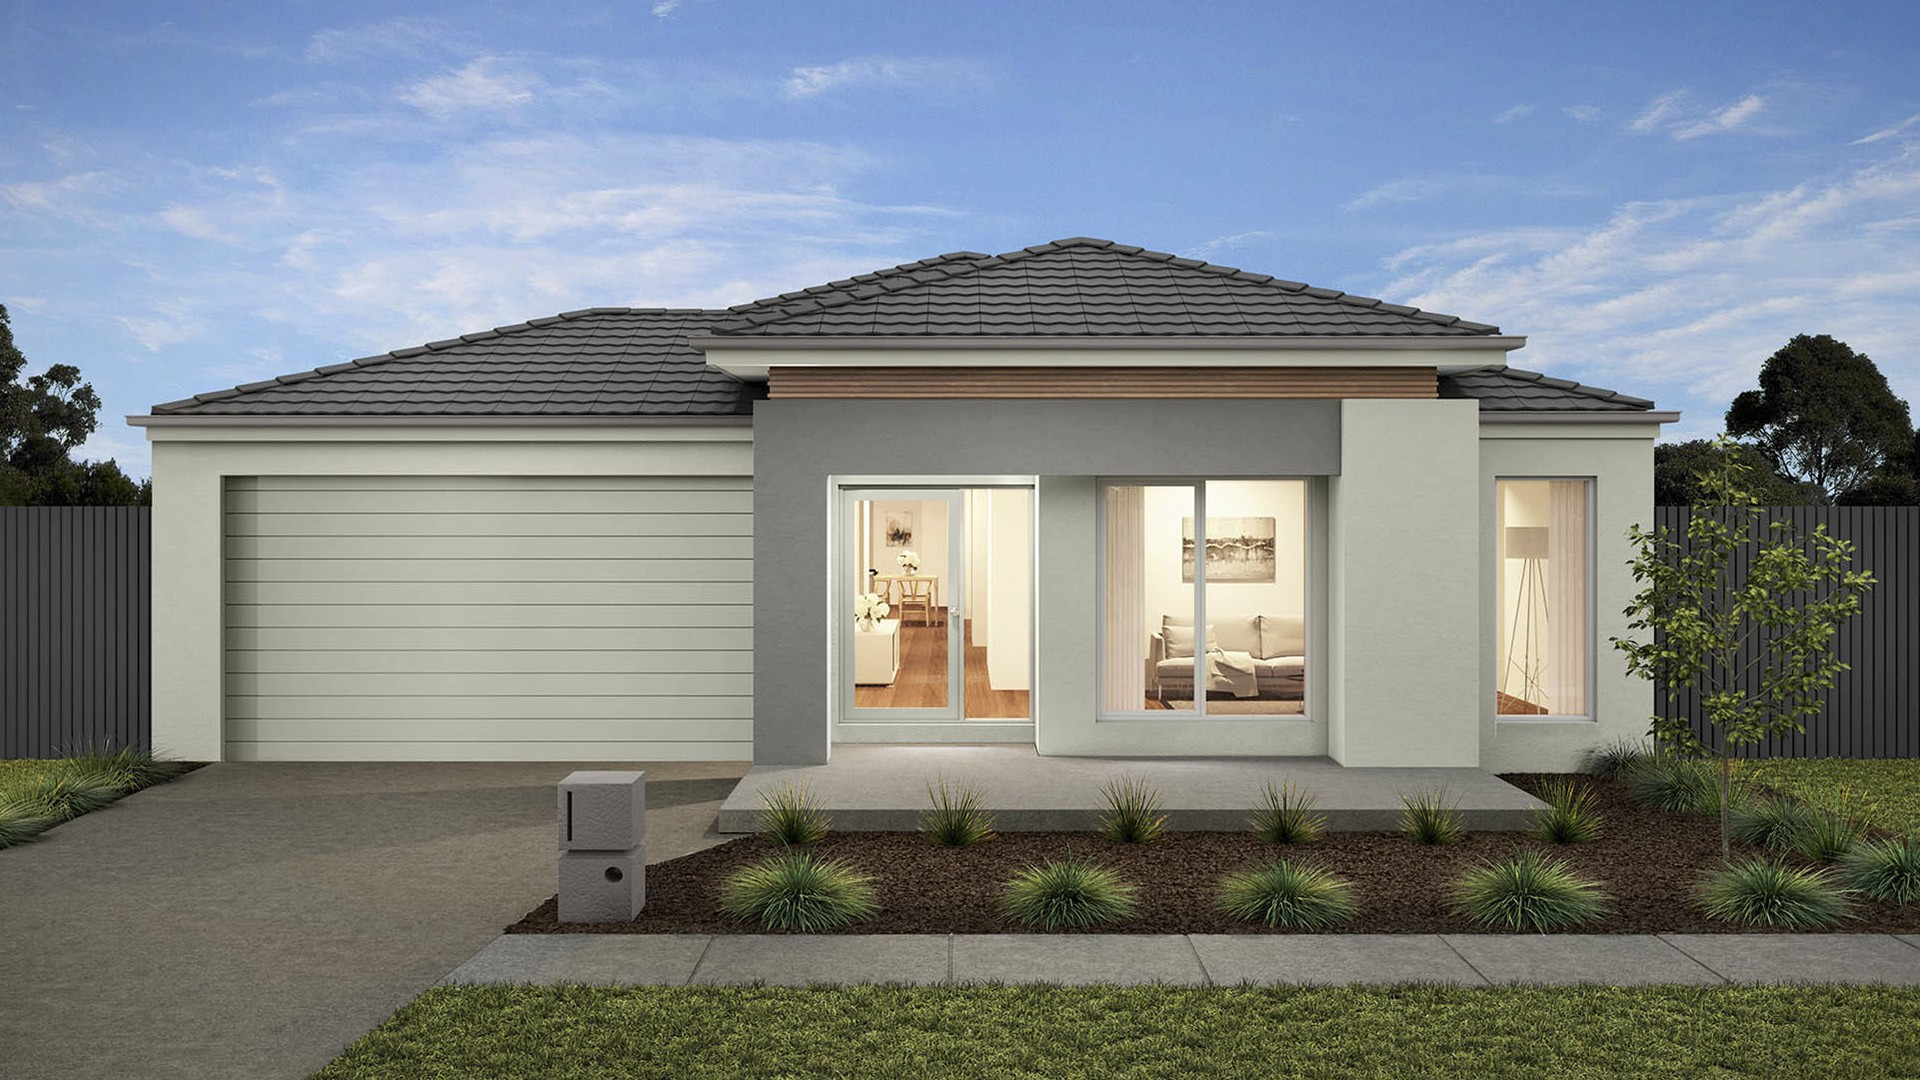 EASYLIVING HARCOURT (HEBEL) MANCHESTER 14 Exterior Image 2